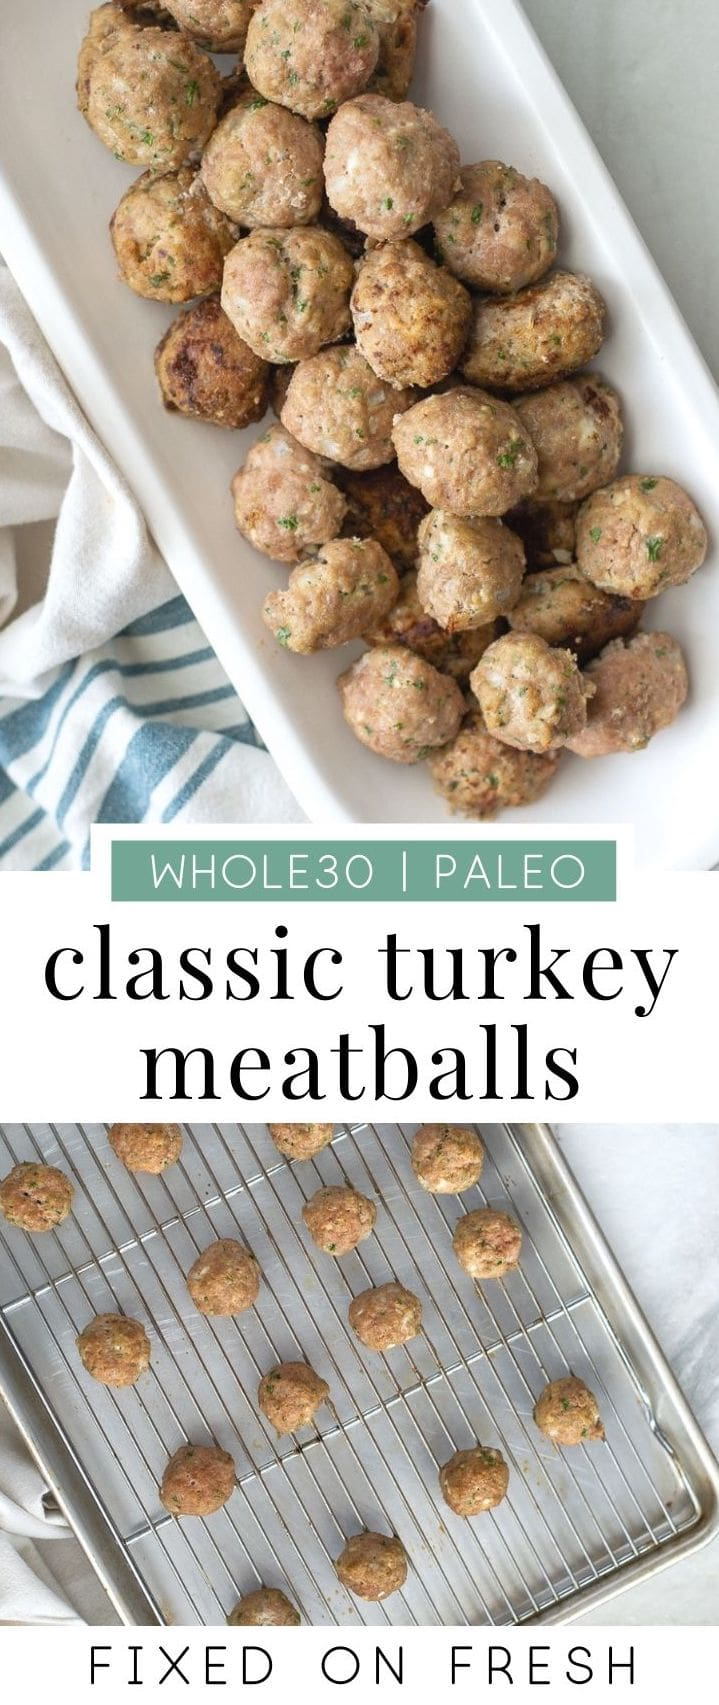 Classic Turkey Meatballs are easy to make, whole30, paleo and keto friendly since this recipe is without breadcrumbs. Serve these up with anything from veggie noodles to mashed potatoes for healthy dinner or meal prep lunch! #whole30 #keto #paleo #protein